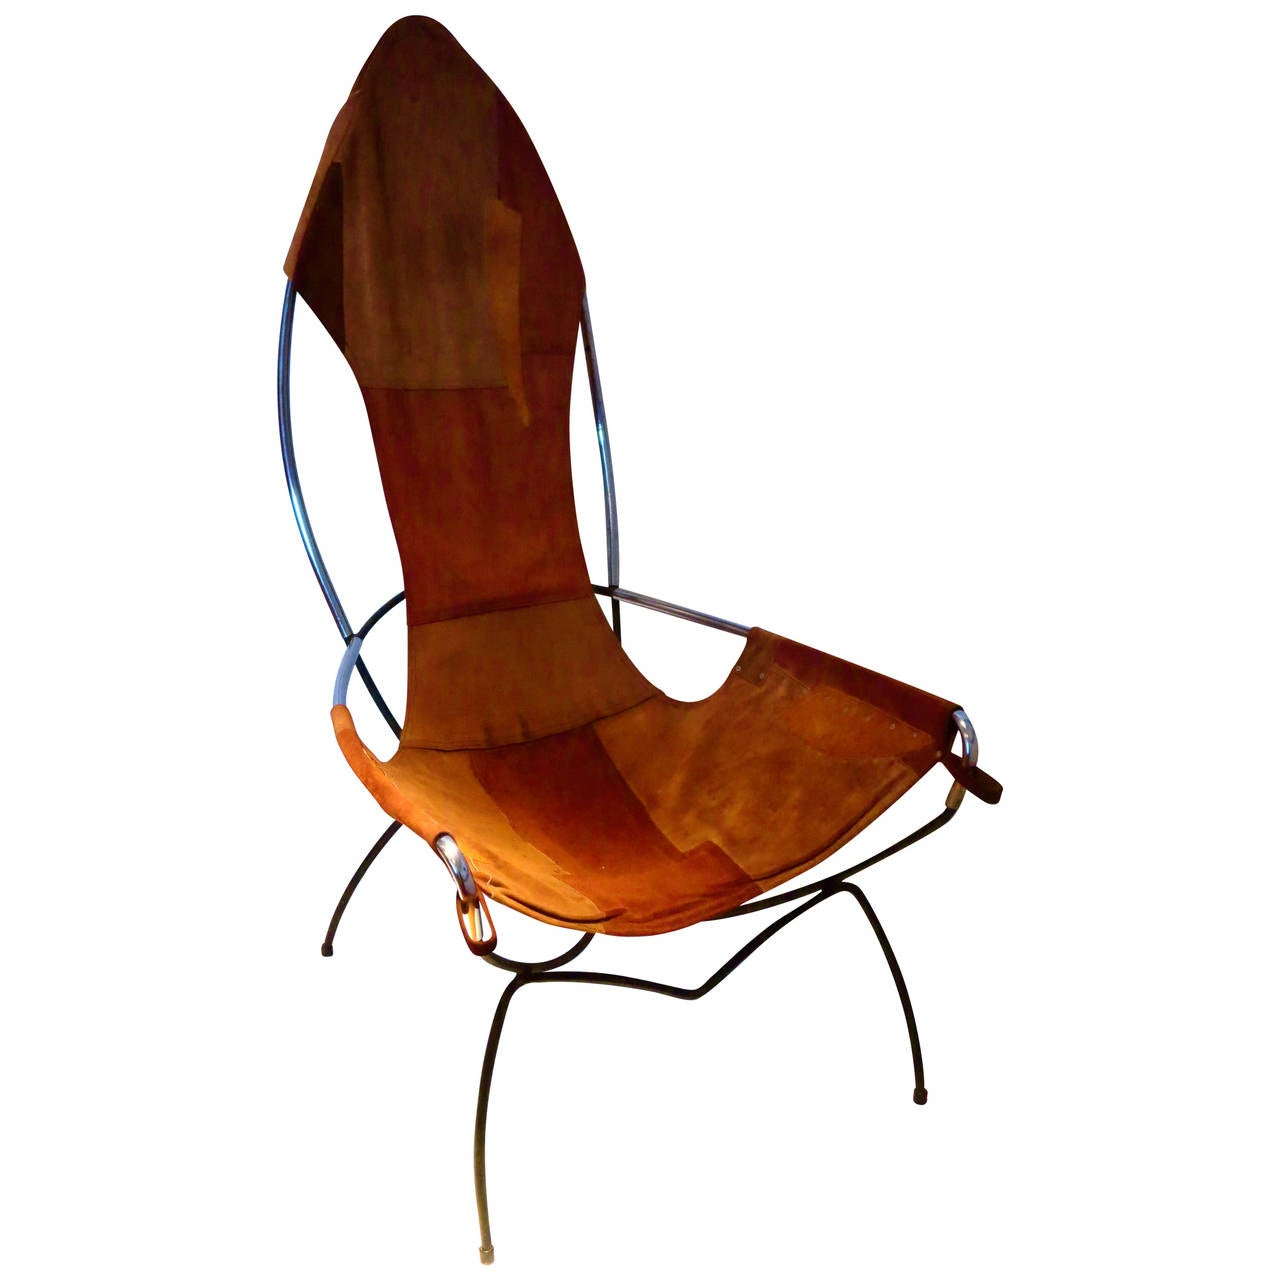 A Rare Tall Back Sling Chair In Leather Iron And Chrome